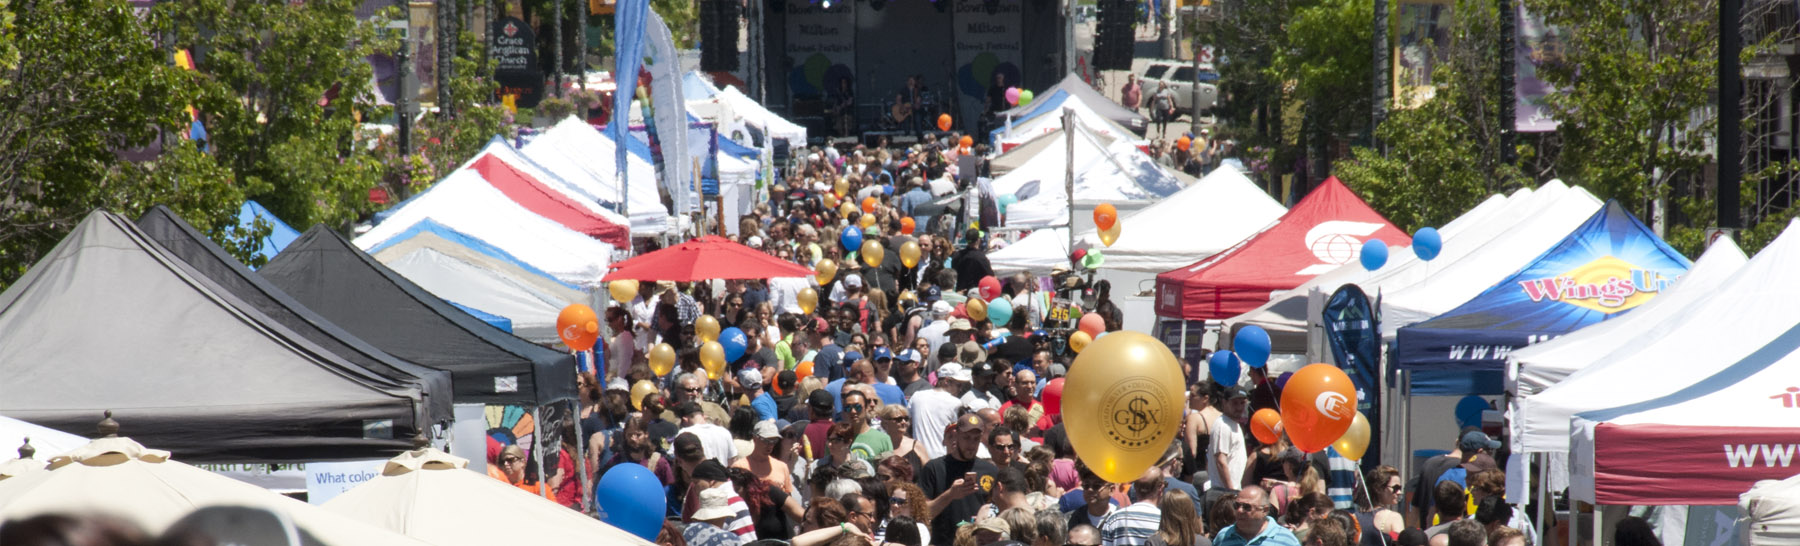 downtown milton street festival overhead shot of the tents and crowds